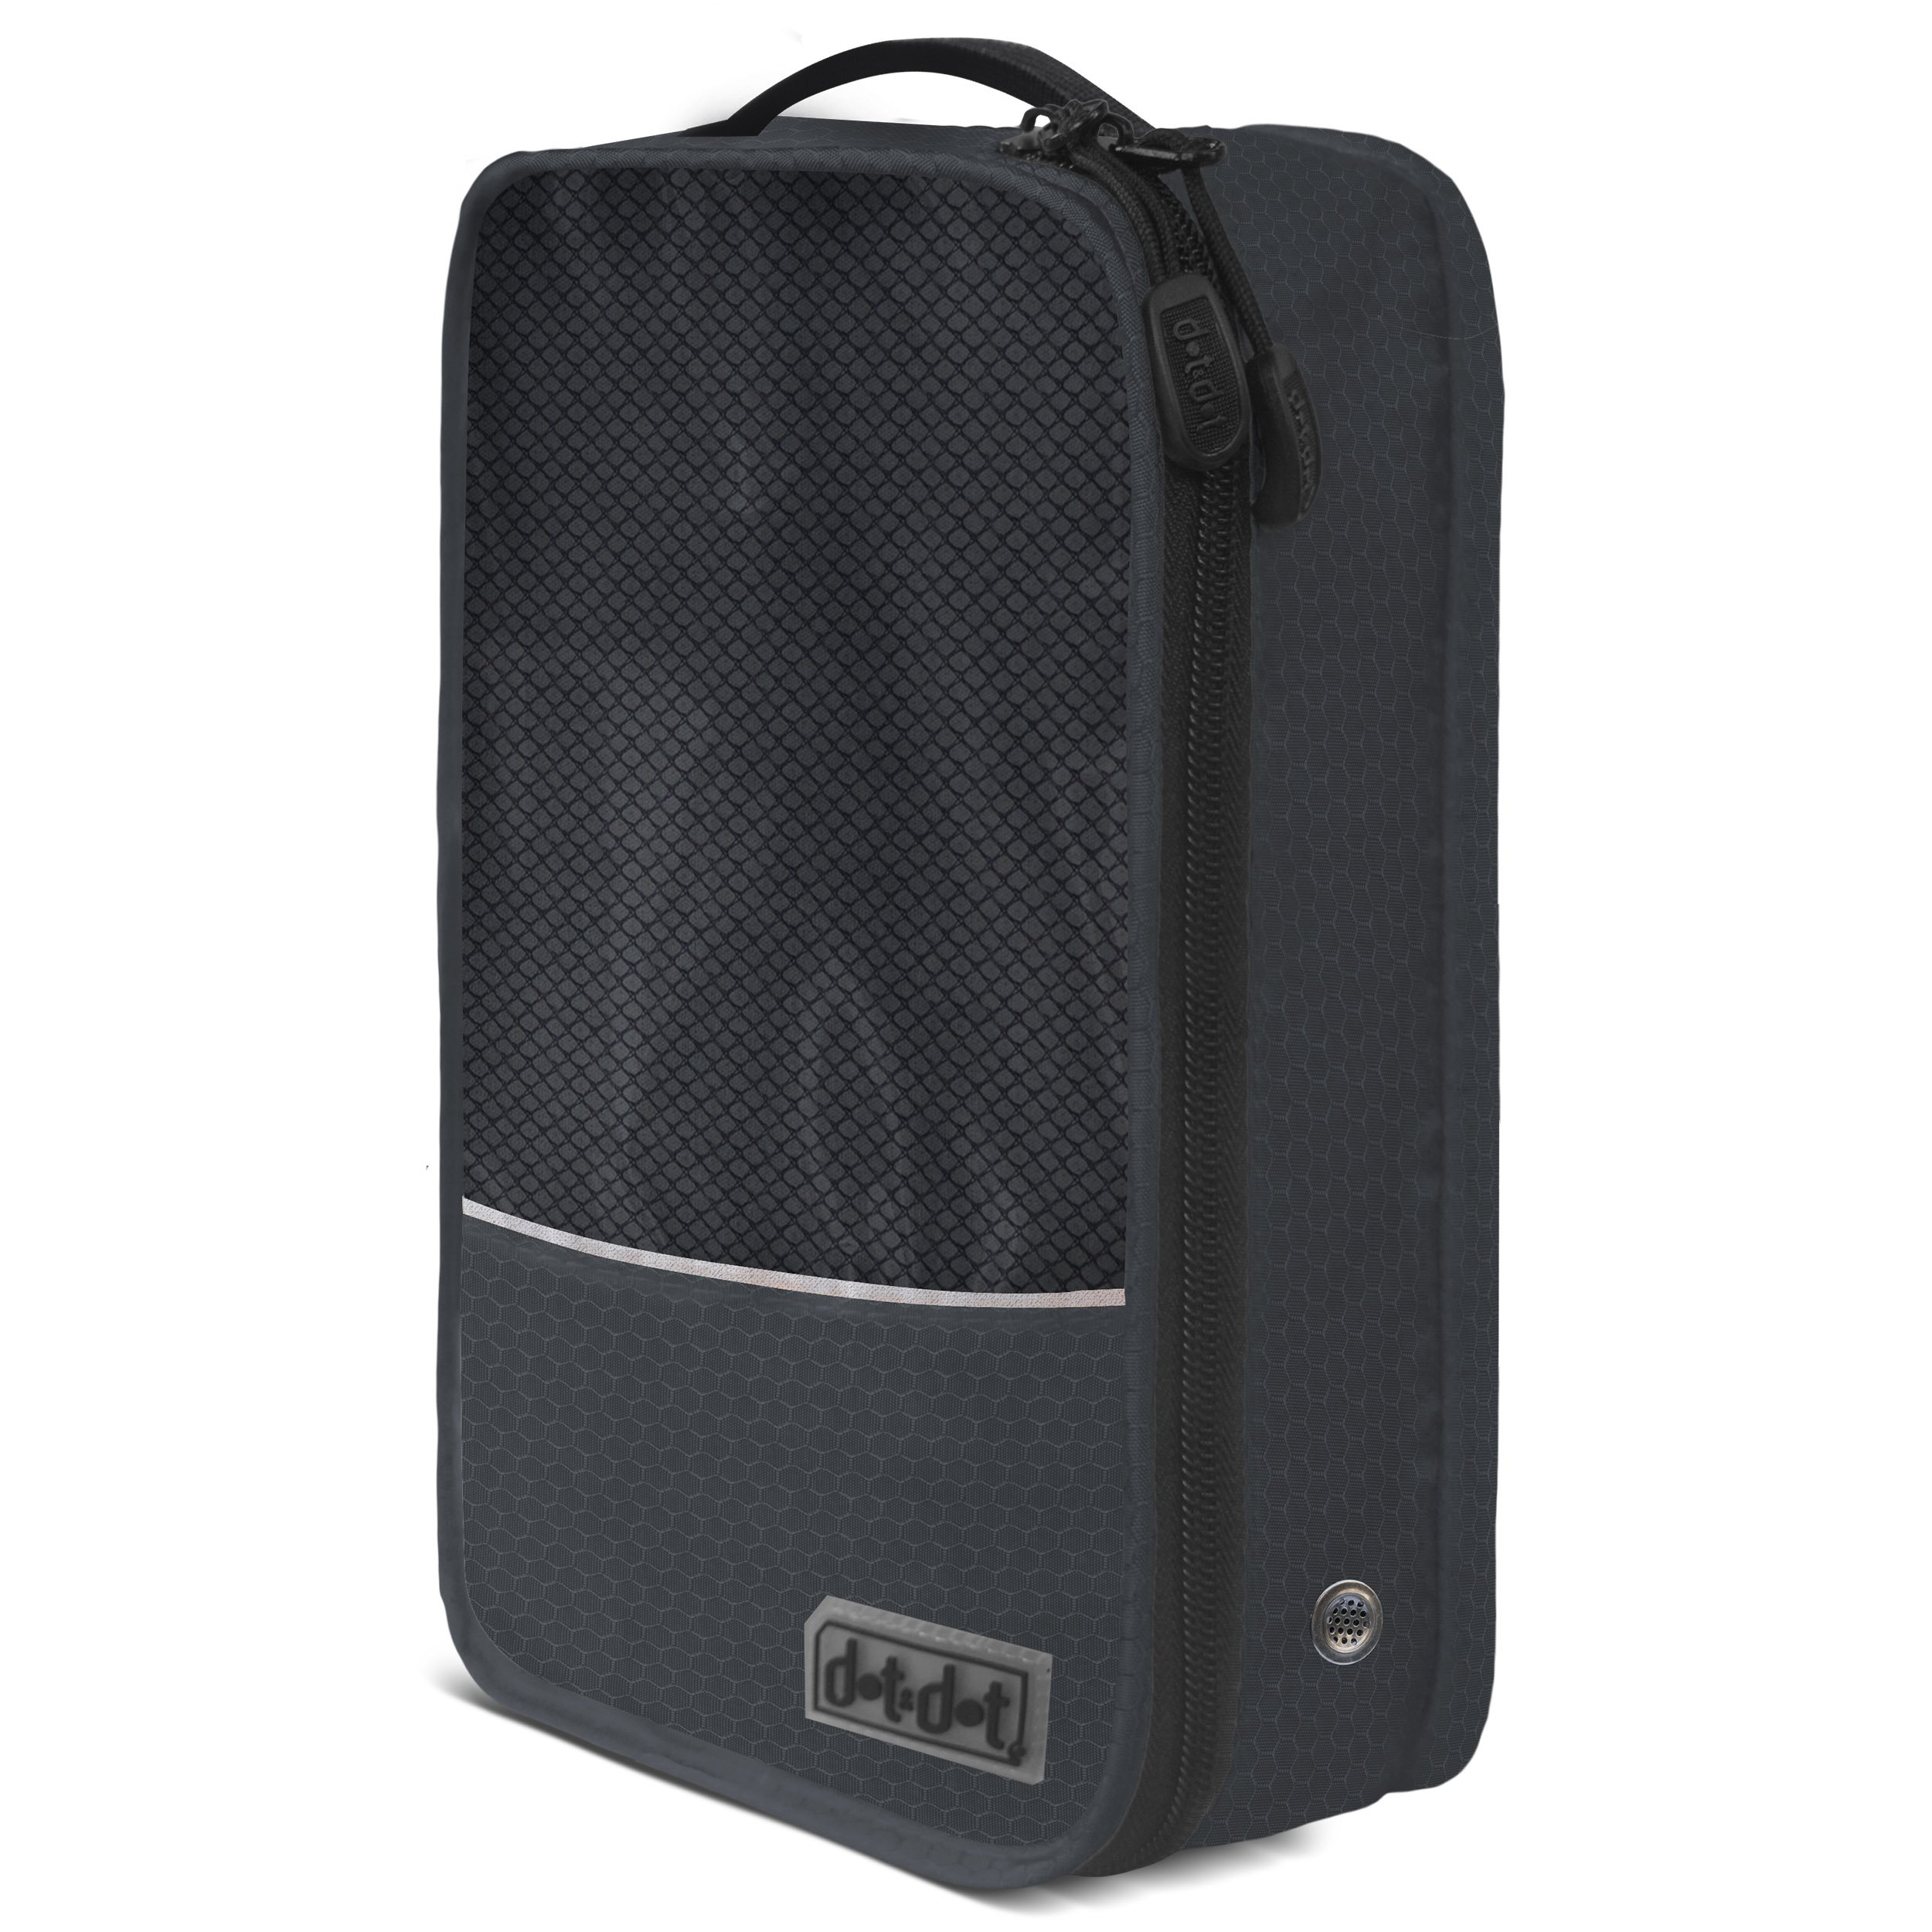 Dot&Dot Shoe Bag - Convenient Packing System For Shoes When Traveling